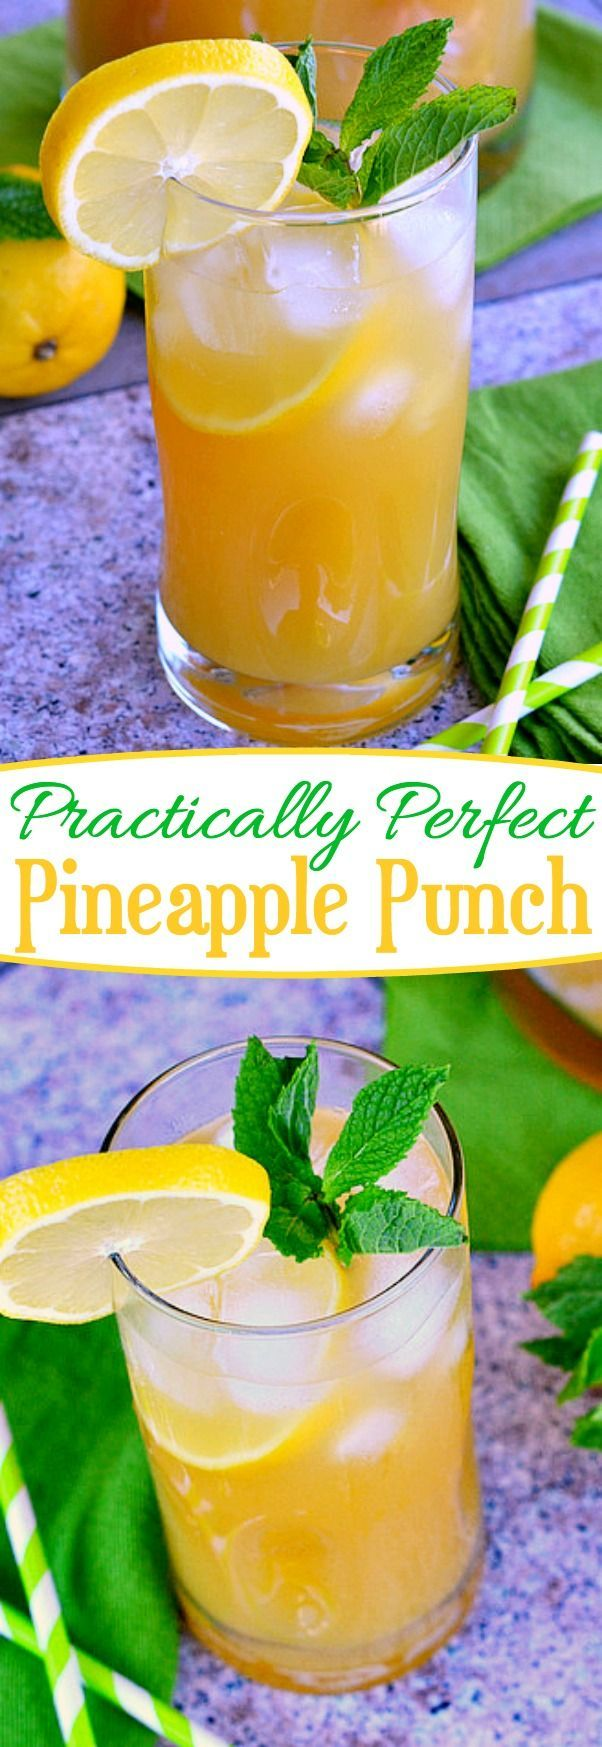 Slow Cooker: Practically Perfect Pineapple Punch - Mom On Timeo...